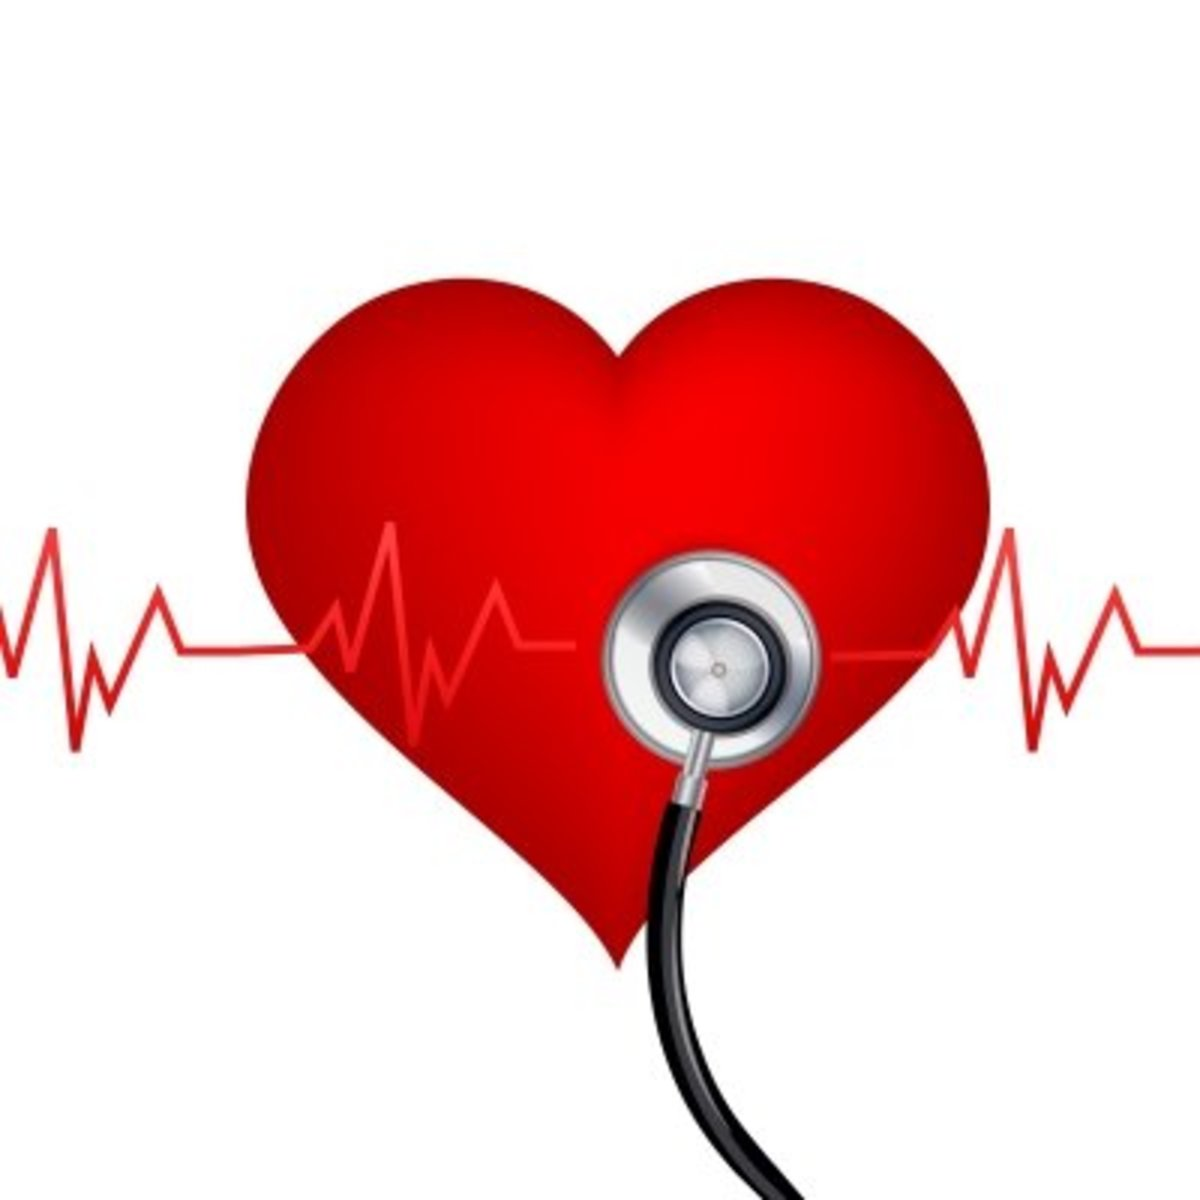 relationship of heartbeat and pulse rate